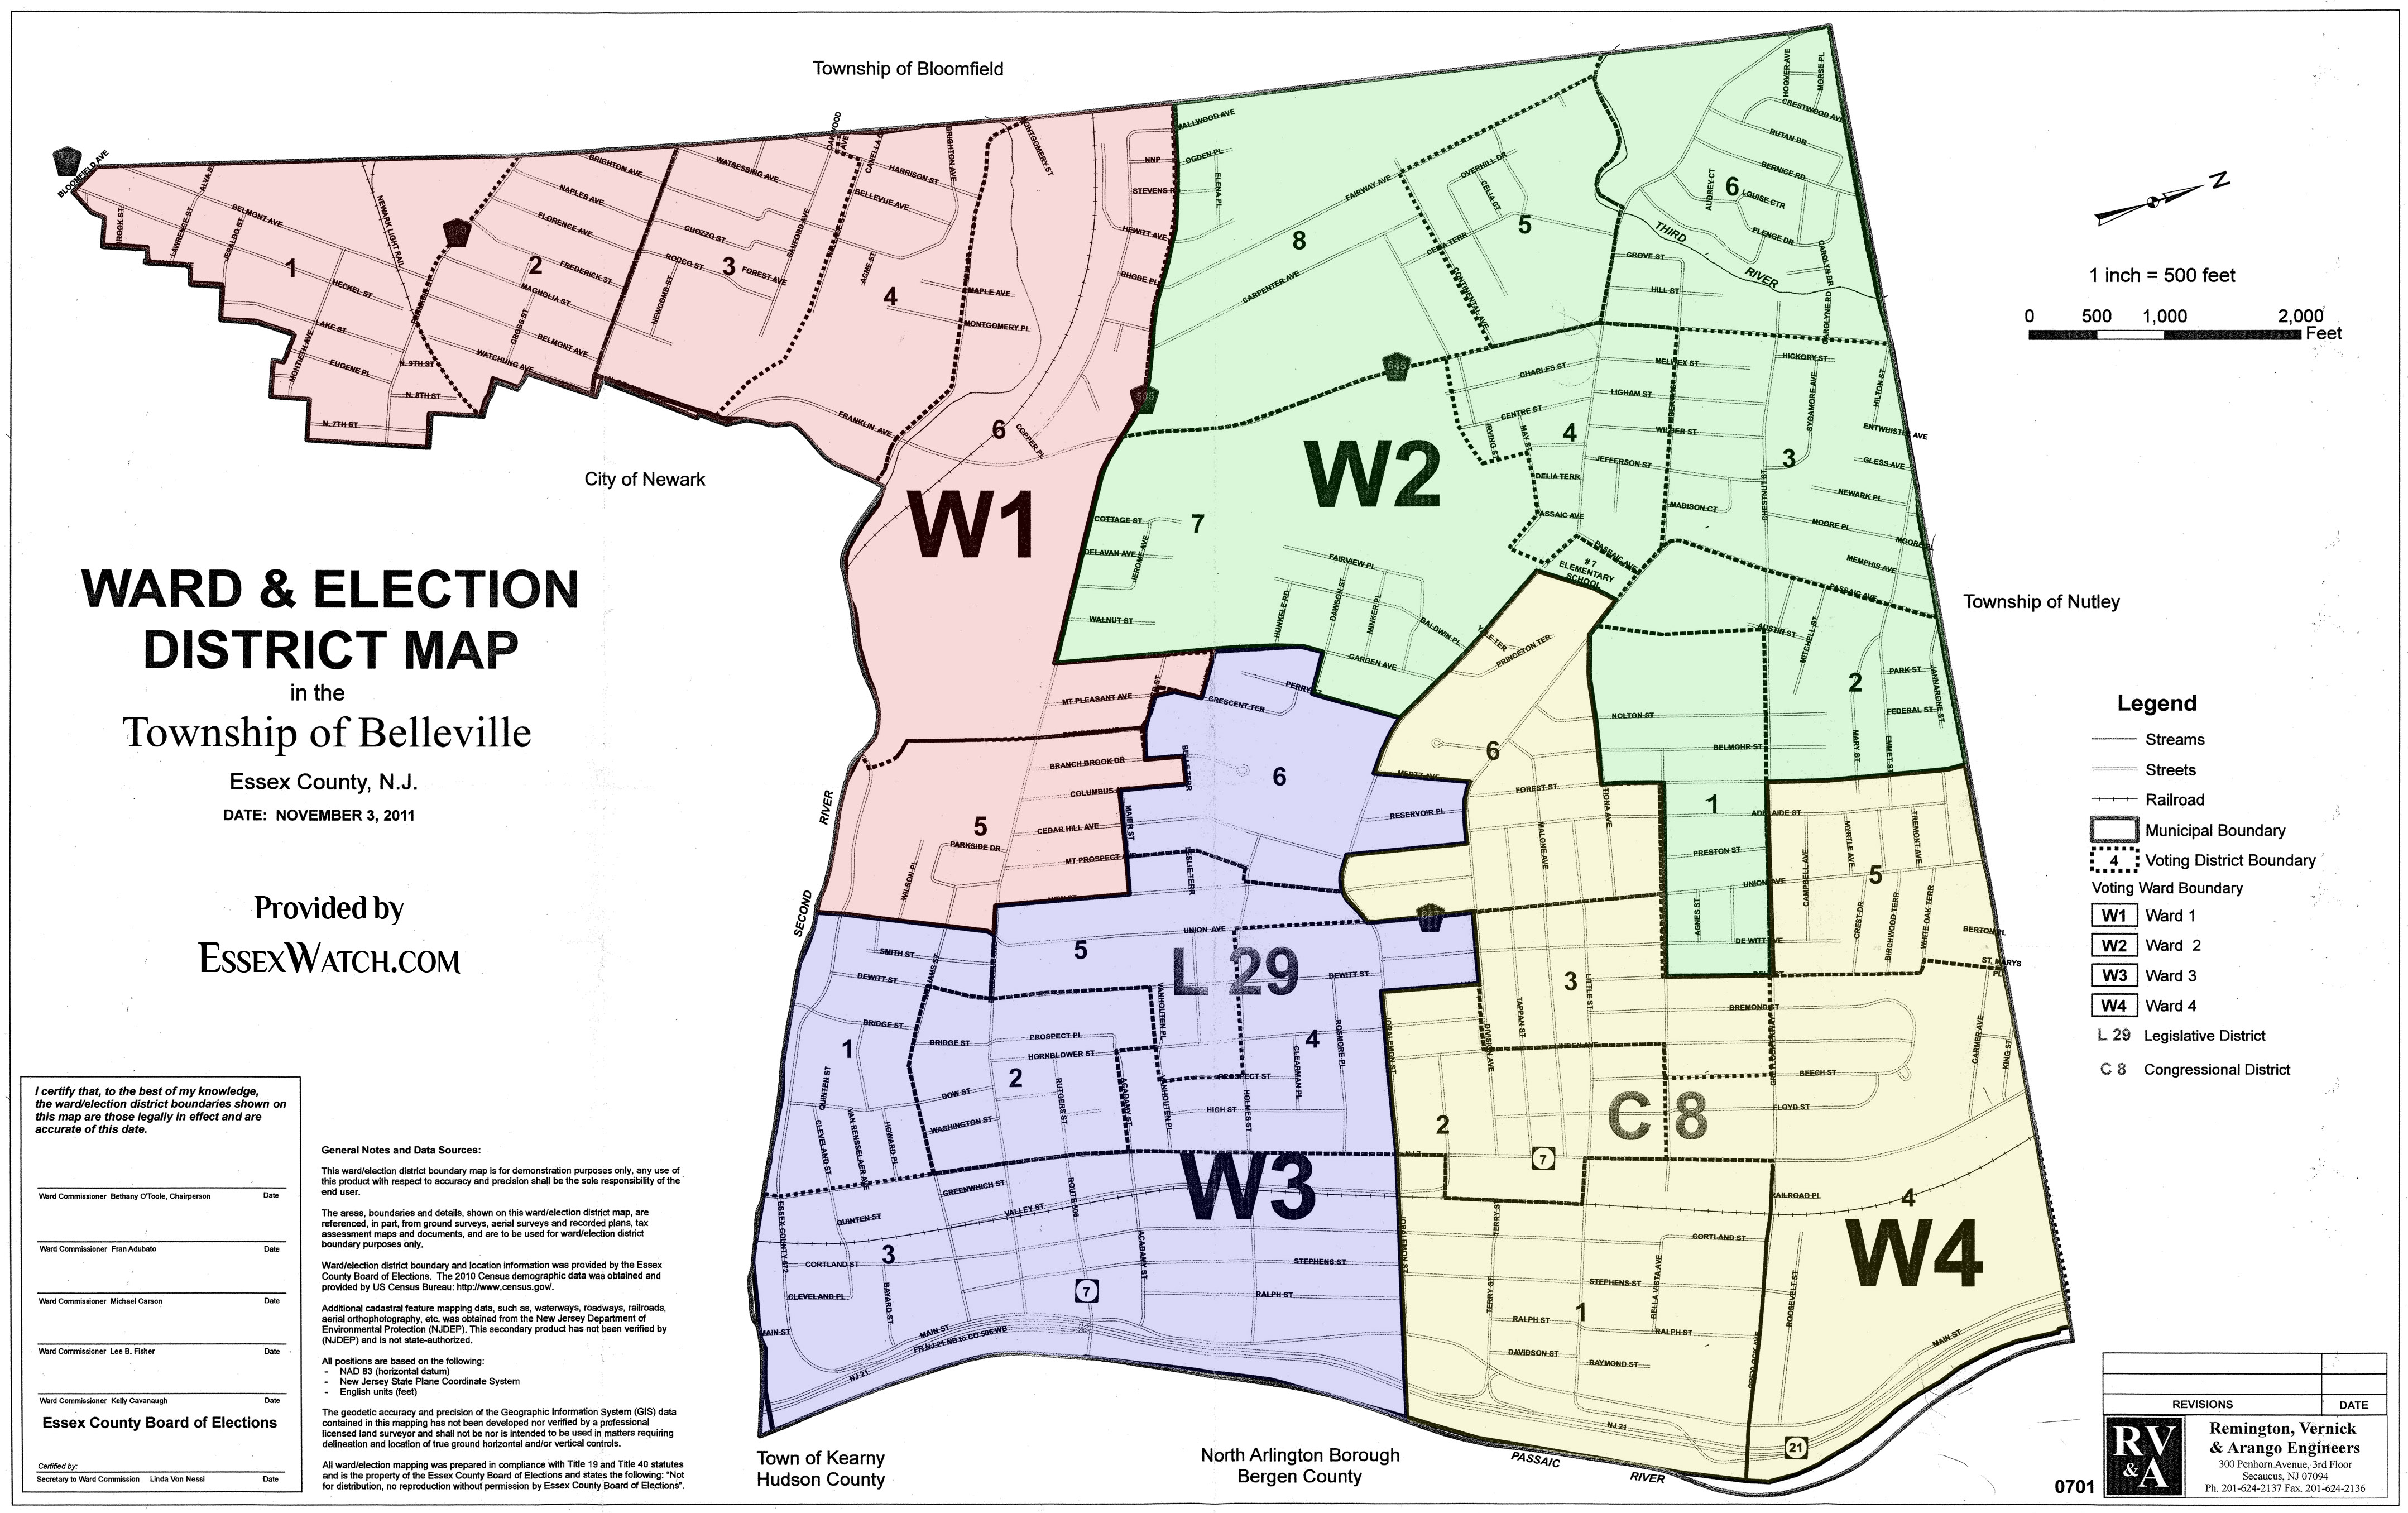 Belleville Ward and Election District Map - Es Watch on norfolk va ward map, newark path station, providence ri ward map, newark tx map, newport ri ward map, chicago tribune ward map, houston tx ward map, city of chicago ward map, paterson new jersey on a map, newark neighborhoods, buffalo ny ward map, newark ward boundaries, las vegas nv ward map, newark ny mapquest, charleston sc ward map, paterson 4th ward map, newark uk map, newark performing arts center, newark new jersey, harrisburg pa ward map,